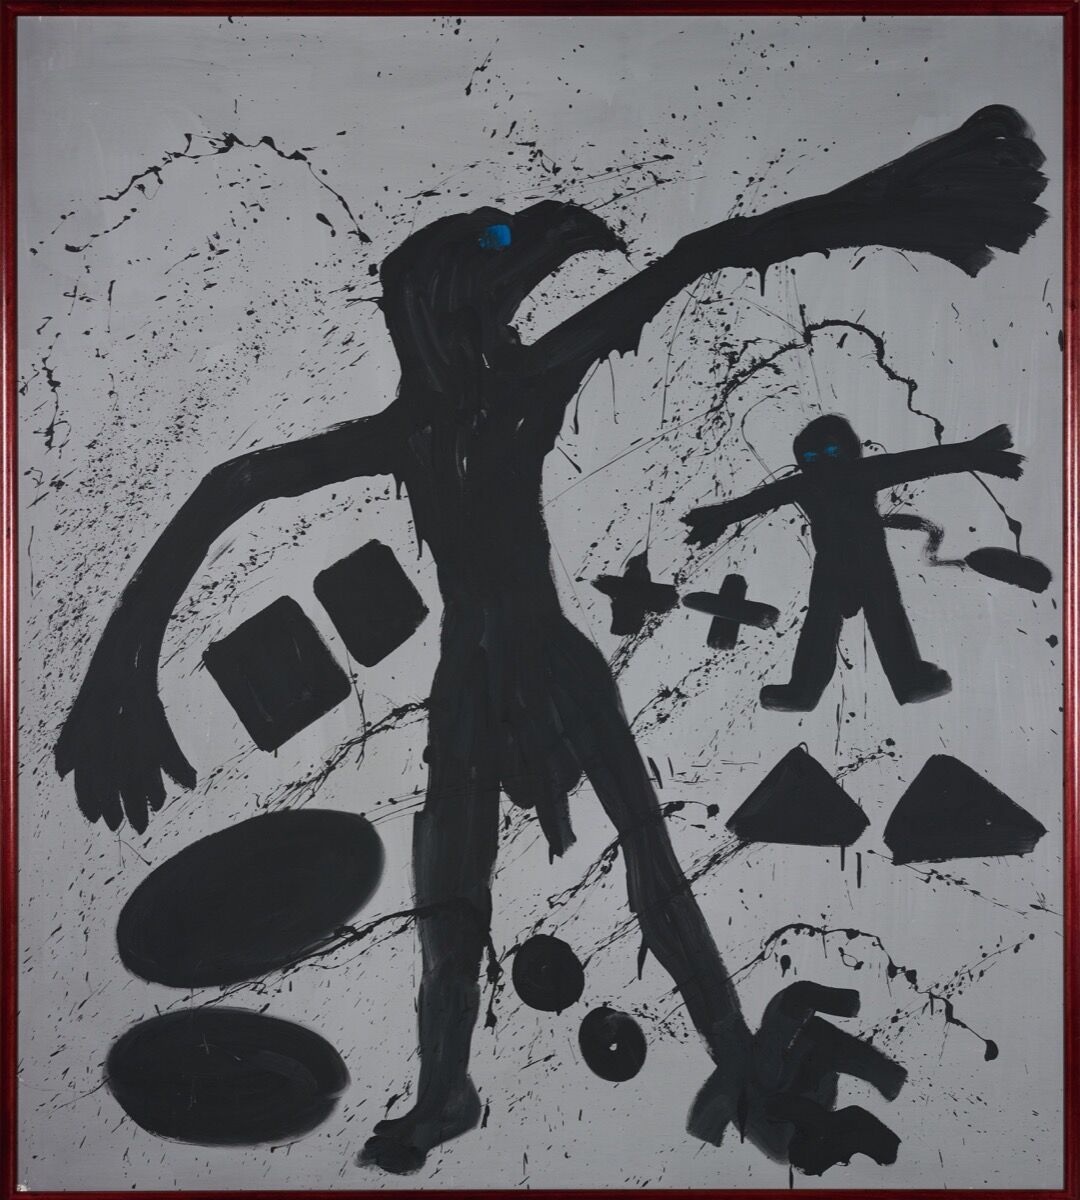 A.R. Penck, Welt des adlers I (World of the Eagle I), 1981. Courtesy of Sotheby's.